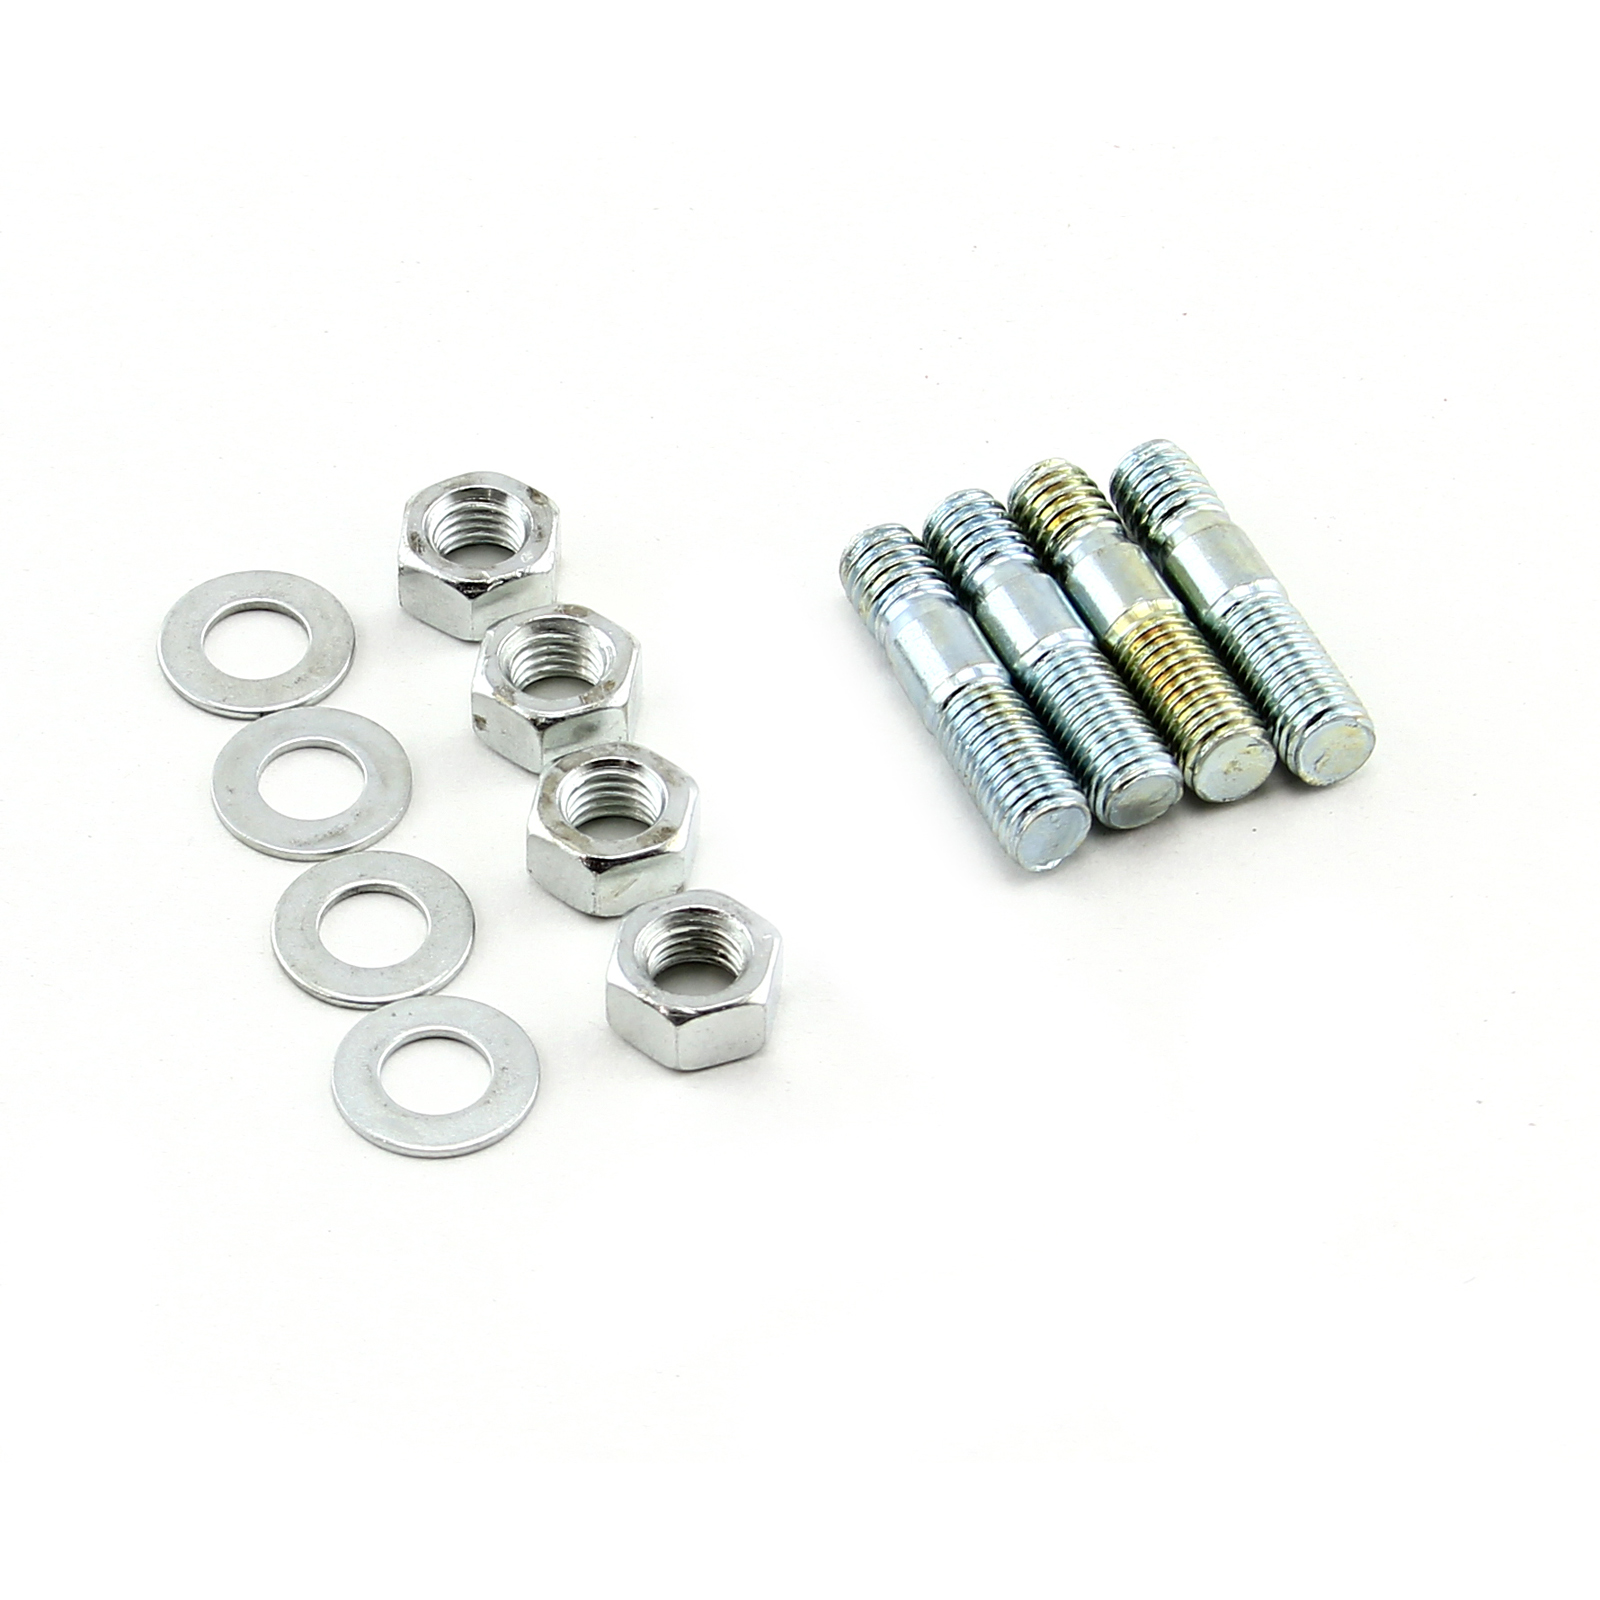 "Carburetor Stud Set Kit - 5/16-18/24"" x 1.375"""